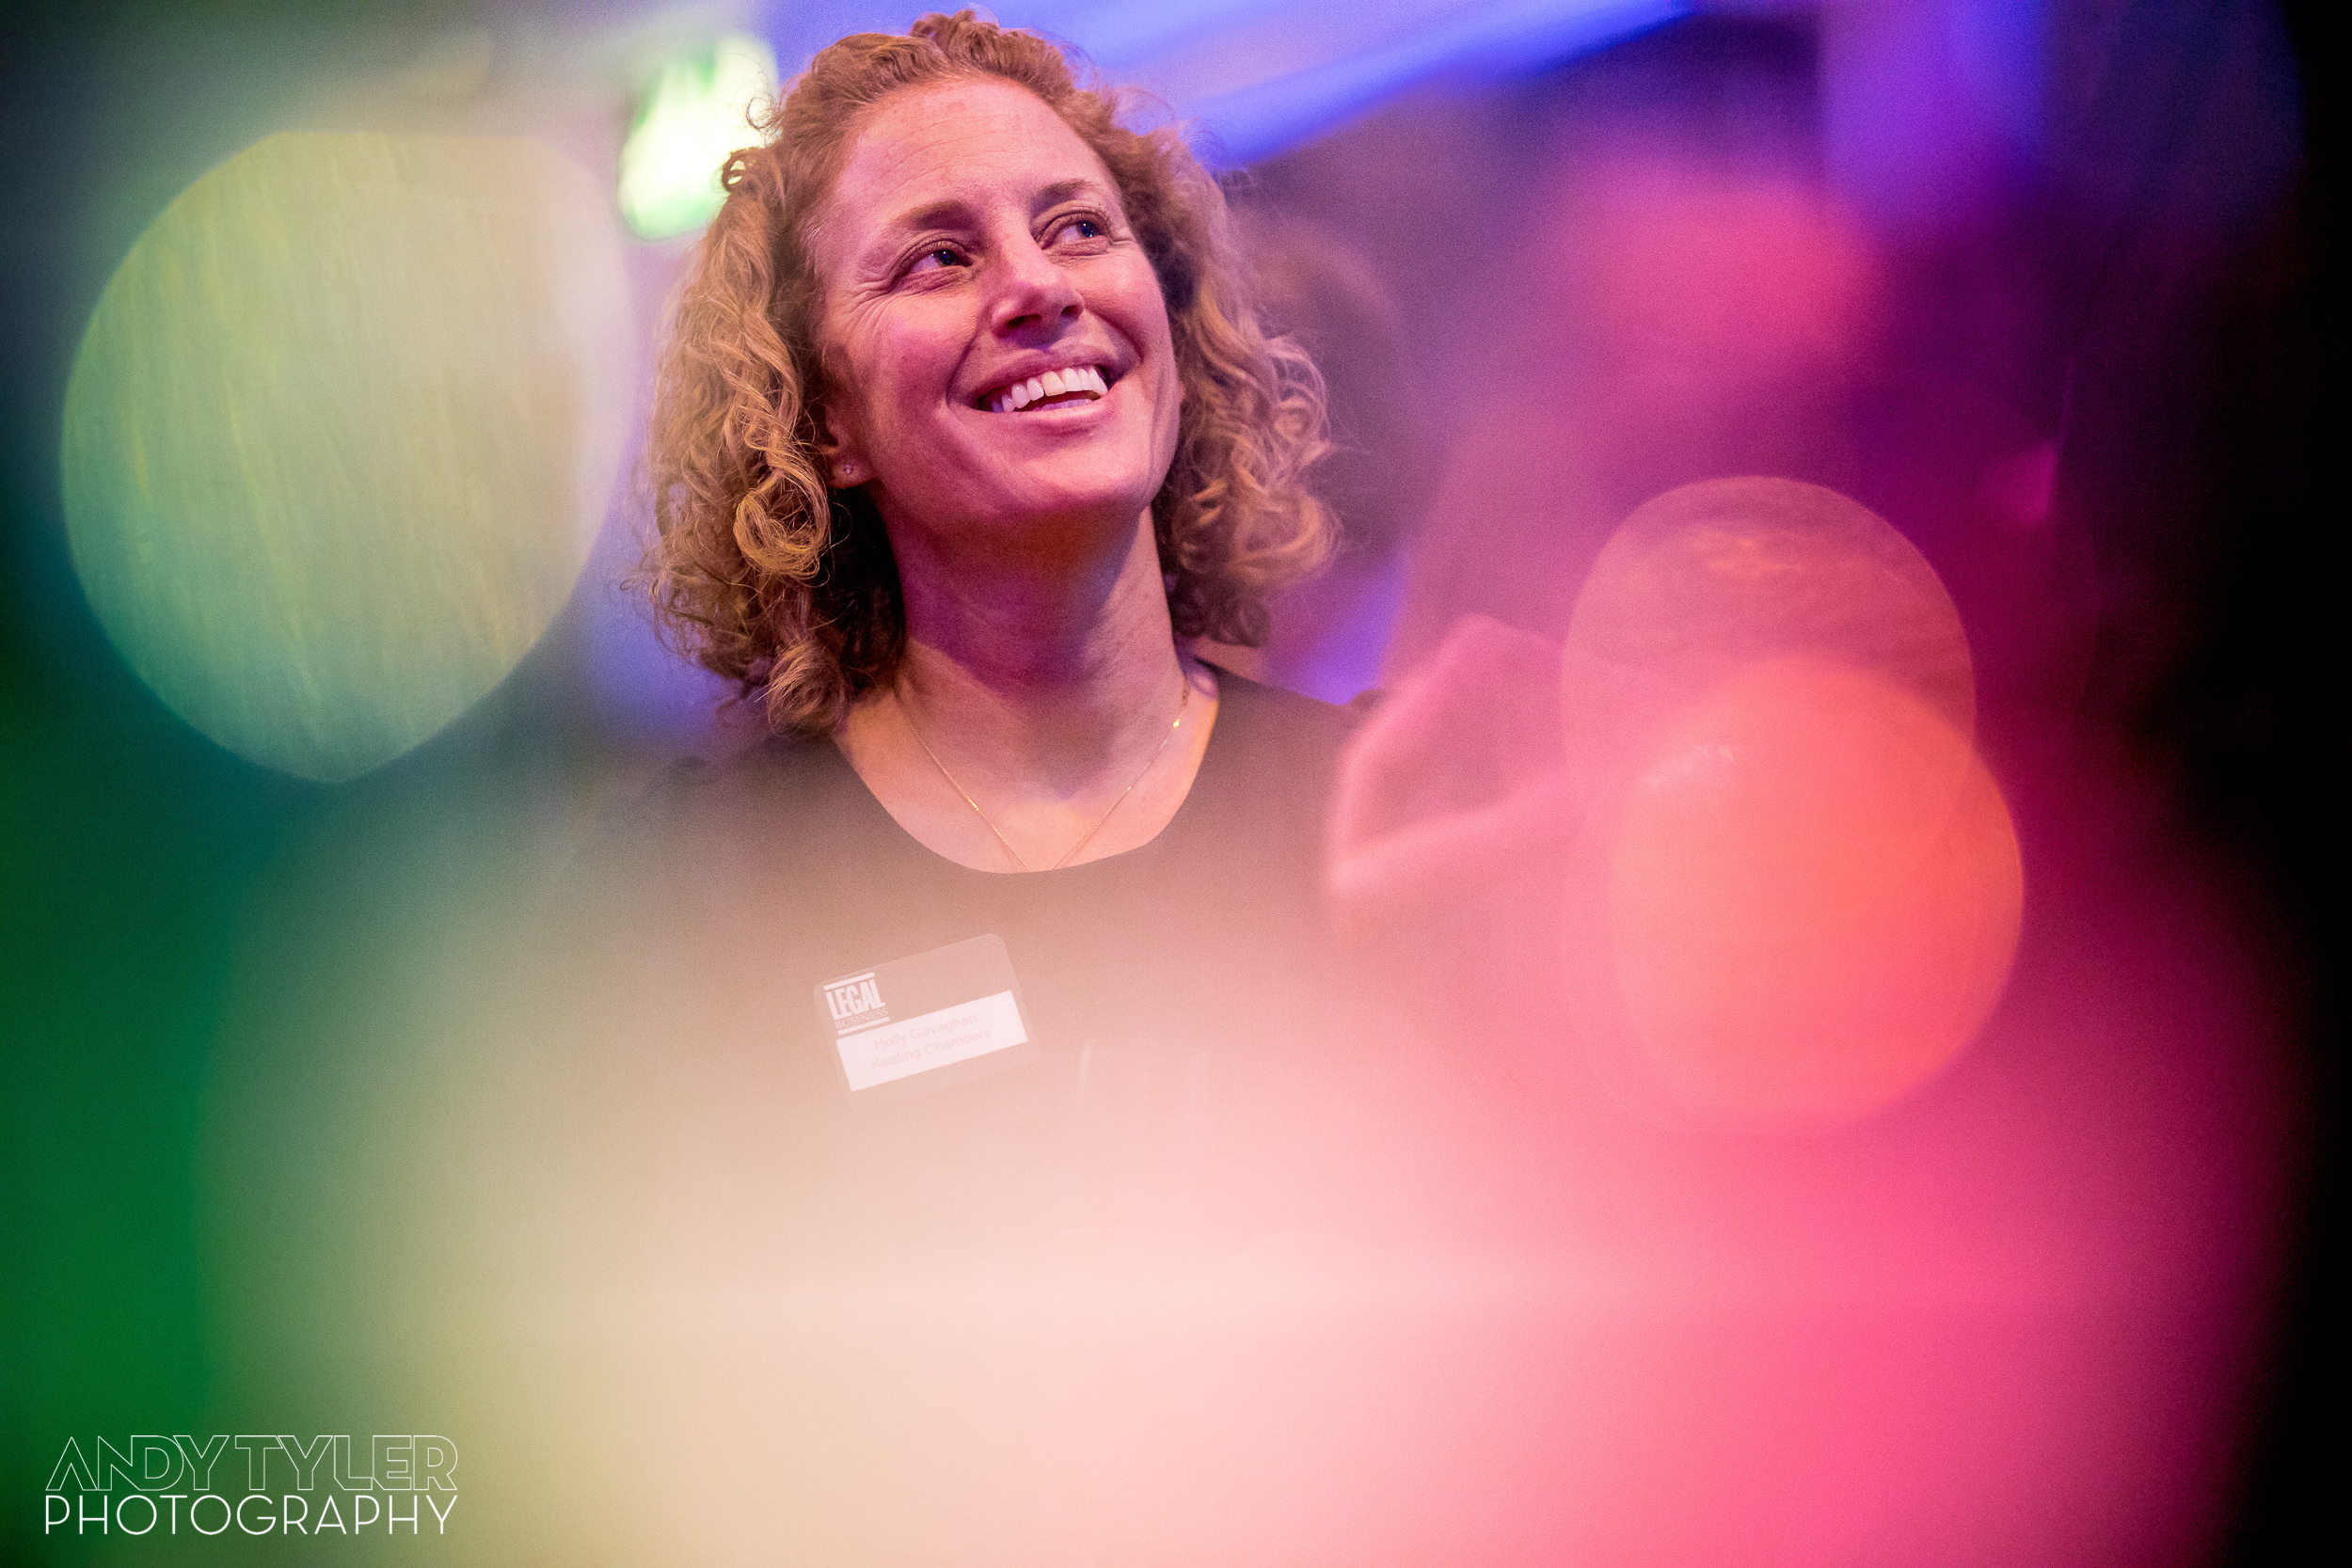 Andy_Tyler_Photography_Business_Conference_022_Andy_Tyler_Photography_368_5DA_1398.jpg